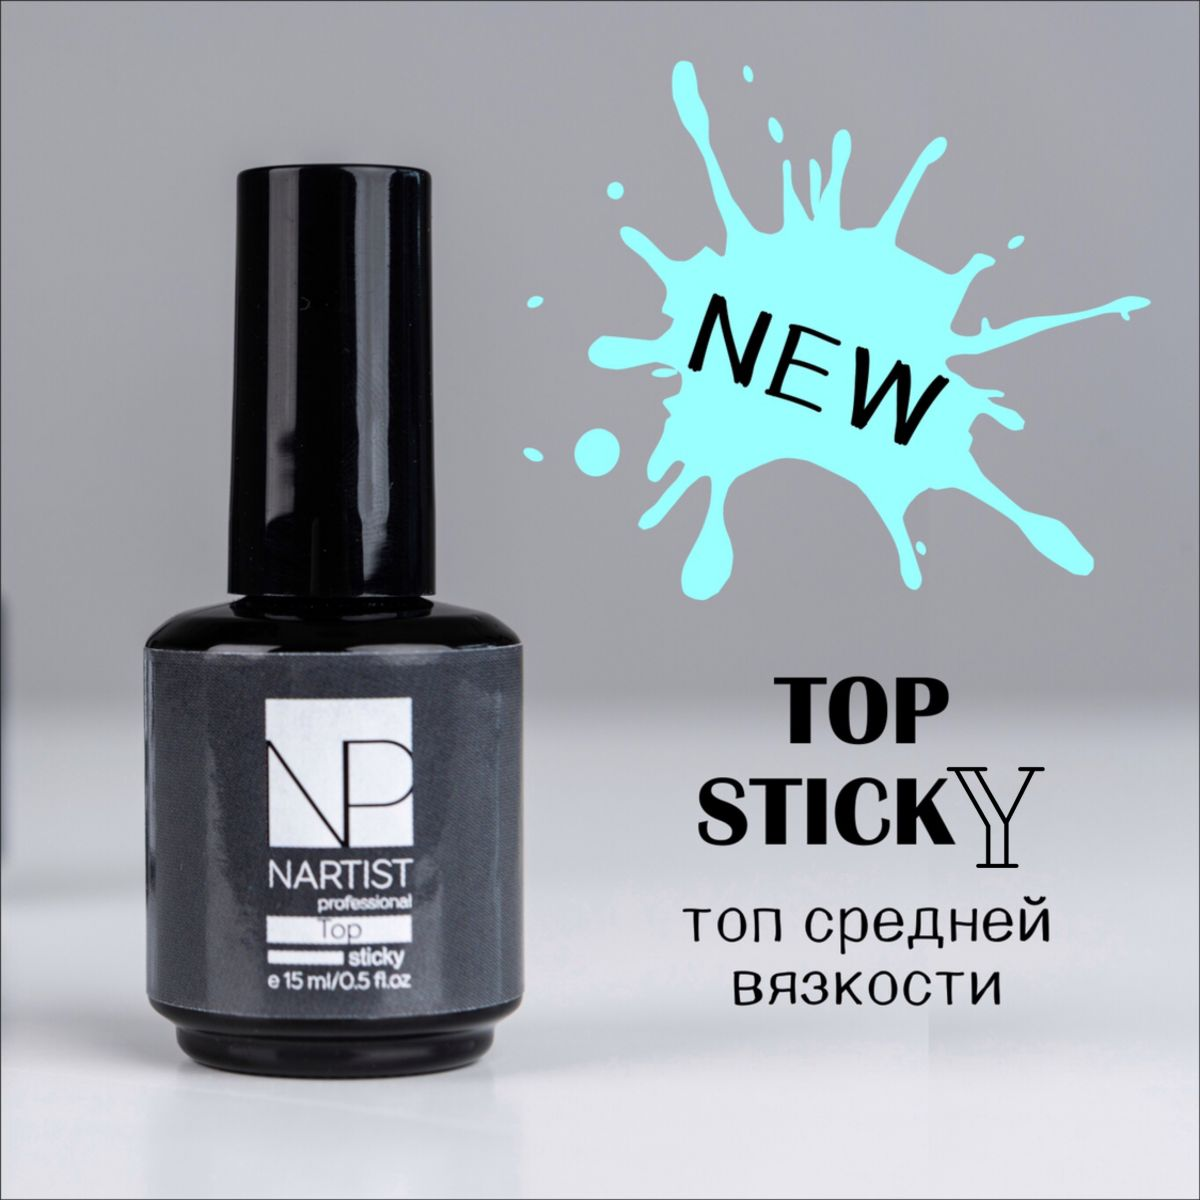 Топ для гель-лака средней вязкости Top STICKEY NARTIST, 15 мл